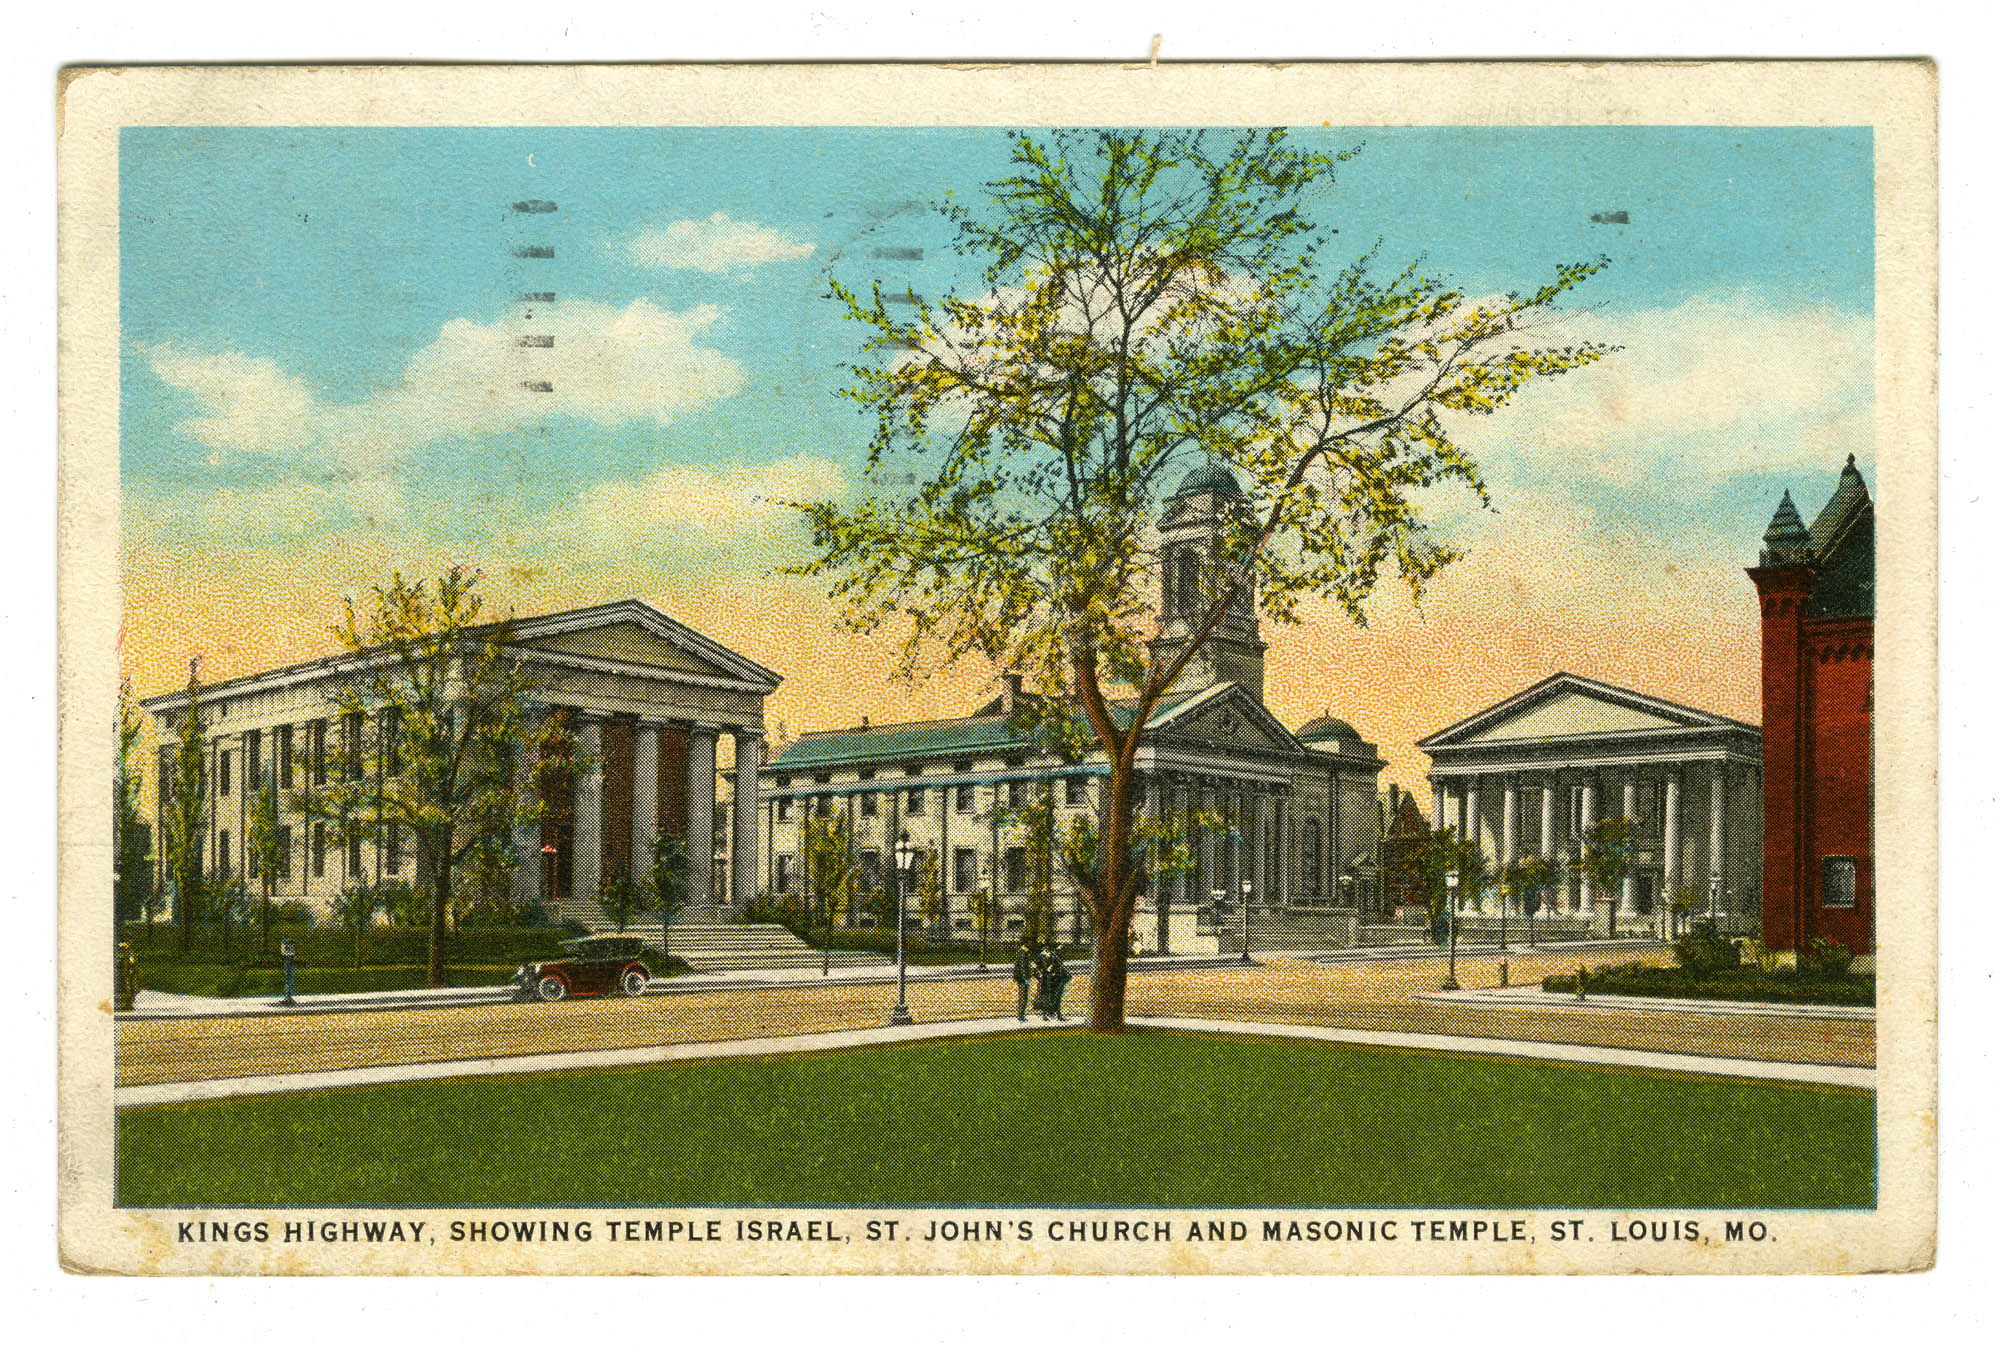 Kings Highway, showing Temple Israel, St. John's Church and Masonic Temple, St. Louis Mo.